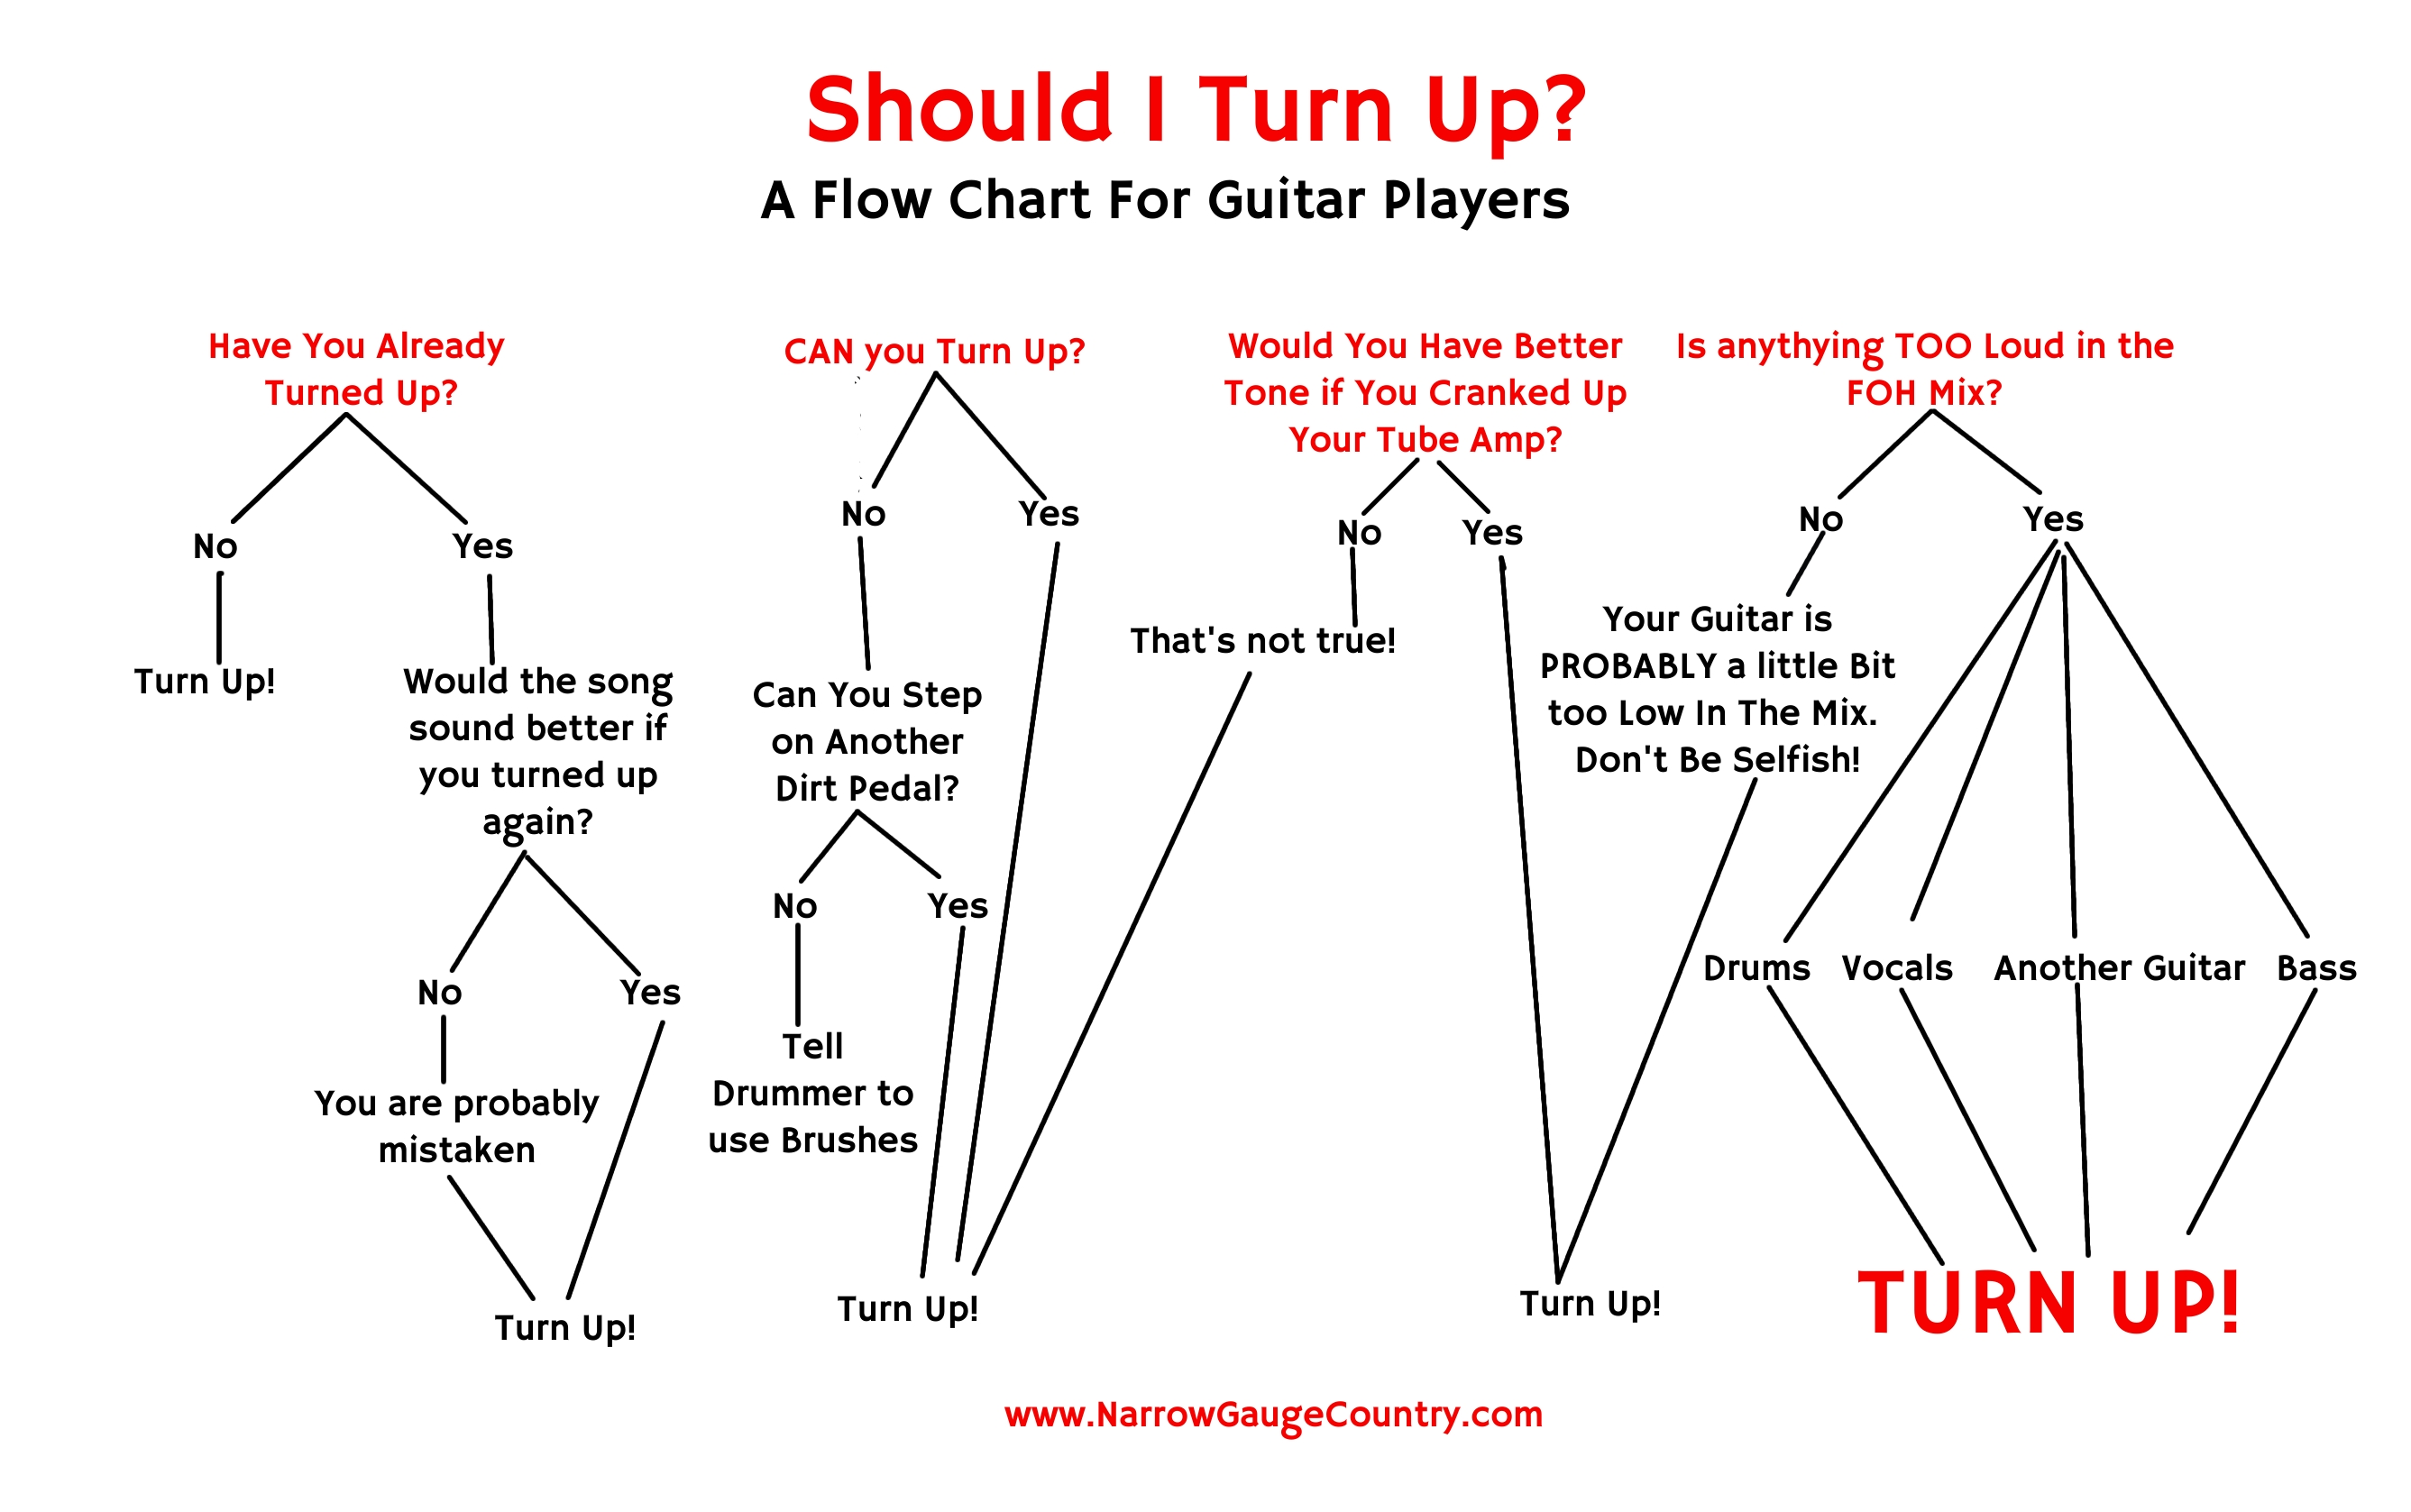 Flow chart for guitar players not for itching ears nvjuhfo Gallery